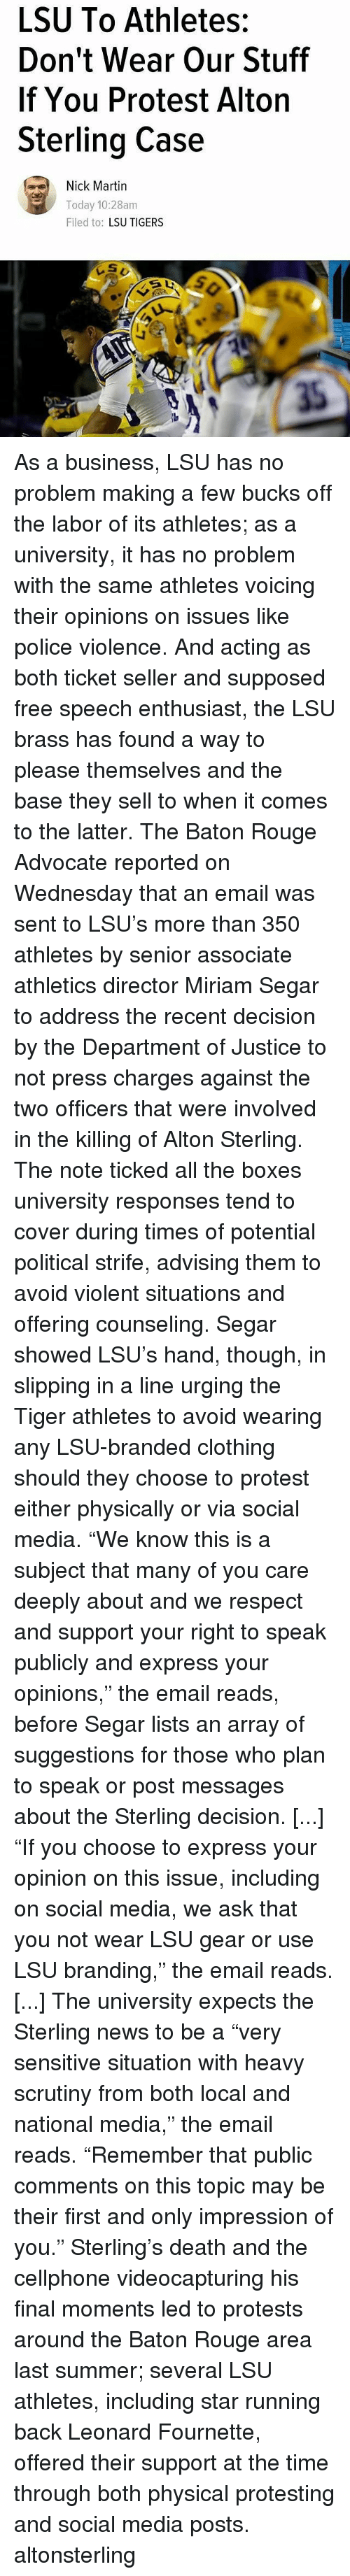 "lsu tigers: LSU To Athletes:  Don't Wear Our Stuff  If You Protest Alton  Sterling Case  Nick Martin  Today 10:28am  Filed to  LSU TIGERS As a business, LSU has no problem making a few bucks off the labor of its athletes; as a university, it has no problem with the same athletes voicing their opinions on issues like police violence. And acting as both ticket seller and supposed free speech enthusiast, the LSU brass has found a way to please themselves and the base they sell to when it comes to the latter. The Baton Rouge Advocate reported on Wednesday that an email was sent to LSU's more than 350 athletes by senior associate athletics director Miriam Segar to address the recent decision by the Department of Justice to not press charges against the two officers that were involved in the killing of Alton Sterling. The note ticked all the boxes university responses tend to cover during times of potential political strife, advising them to avoid violent situations and offering counseling. Segar showed LSU's hand, though, in slipping in a line urging the Tiger athletes to avoid wearing any LSU-branded clothing should they choose to protest either physically or via social media. ""We know this is a subject that many of you care deeply about and we respect and support your right to speak publicly and express your opinions,"" the email reads, before Segar lists an array of suggestions for those who plan to speak or post messages about the Sterling decision. [...] ""If you choose to express your opinion on this issue, including on social media, we ask that you not wear LSU gear or use LSU branding,"" the email reads. [...] The university expects the Sterling news to be a ""very sensitive situation with heavy scrutiny from both local and national media,"" the email reads. ""Remember that public comments on this topic may be their first and only impression of you."" Sterling's death and the cellphone videocapturing his final moments led to protests around the Baton Rouge area last summer; several LSU athletes, including star running back Leonard Fournette, offered their support at the time through both physical protesting and social media posts. altonsterling"